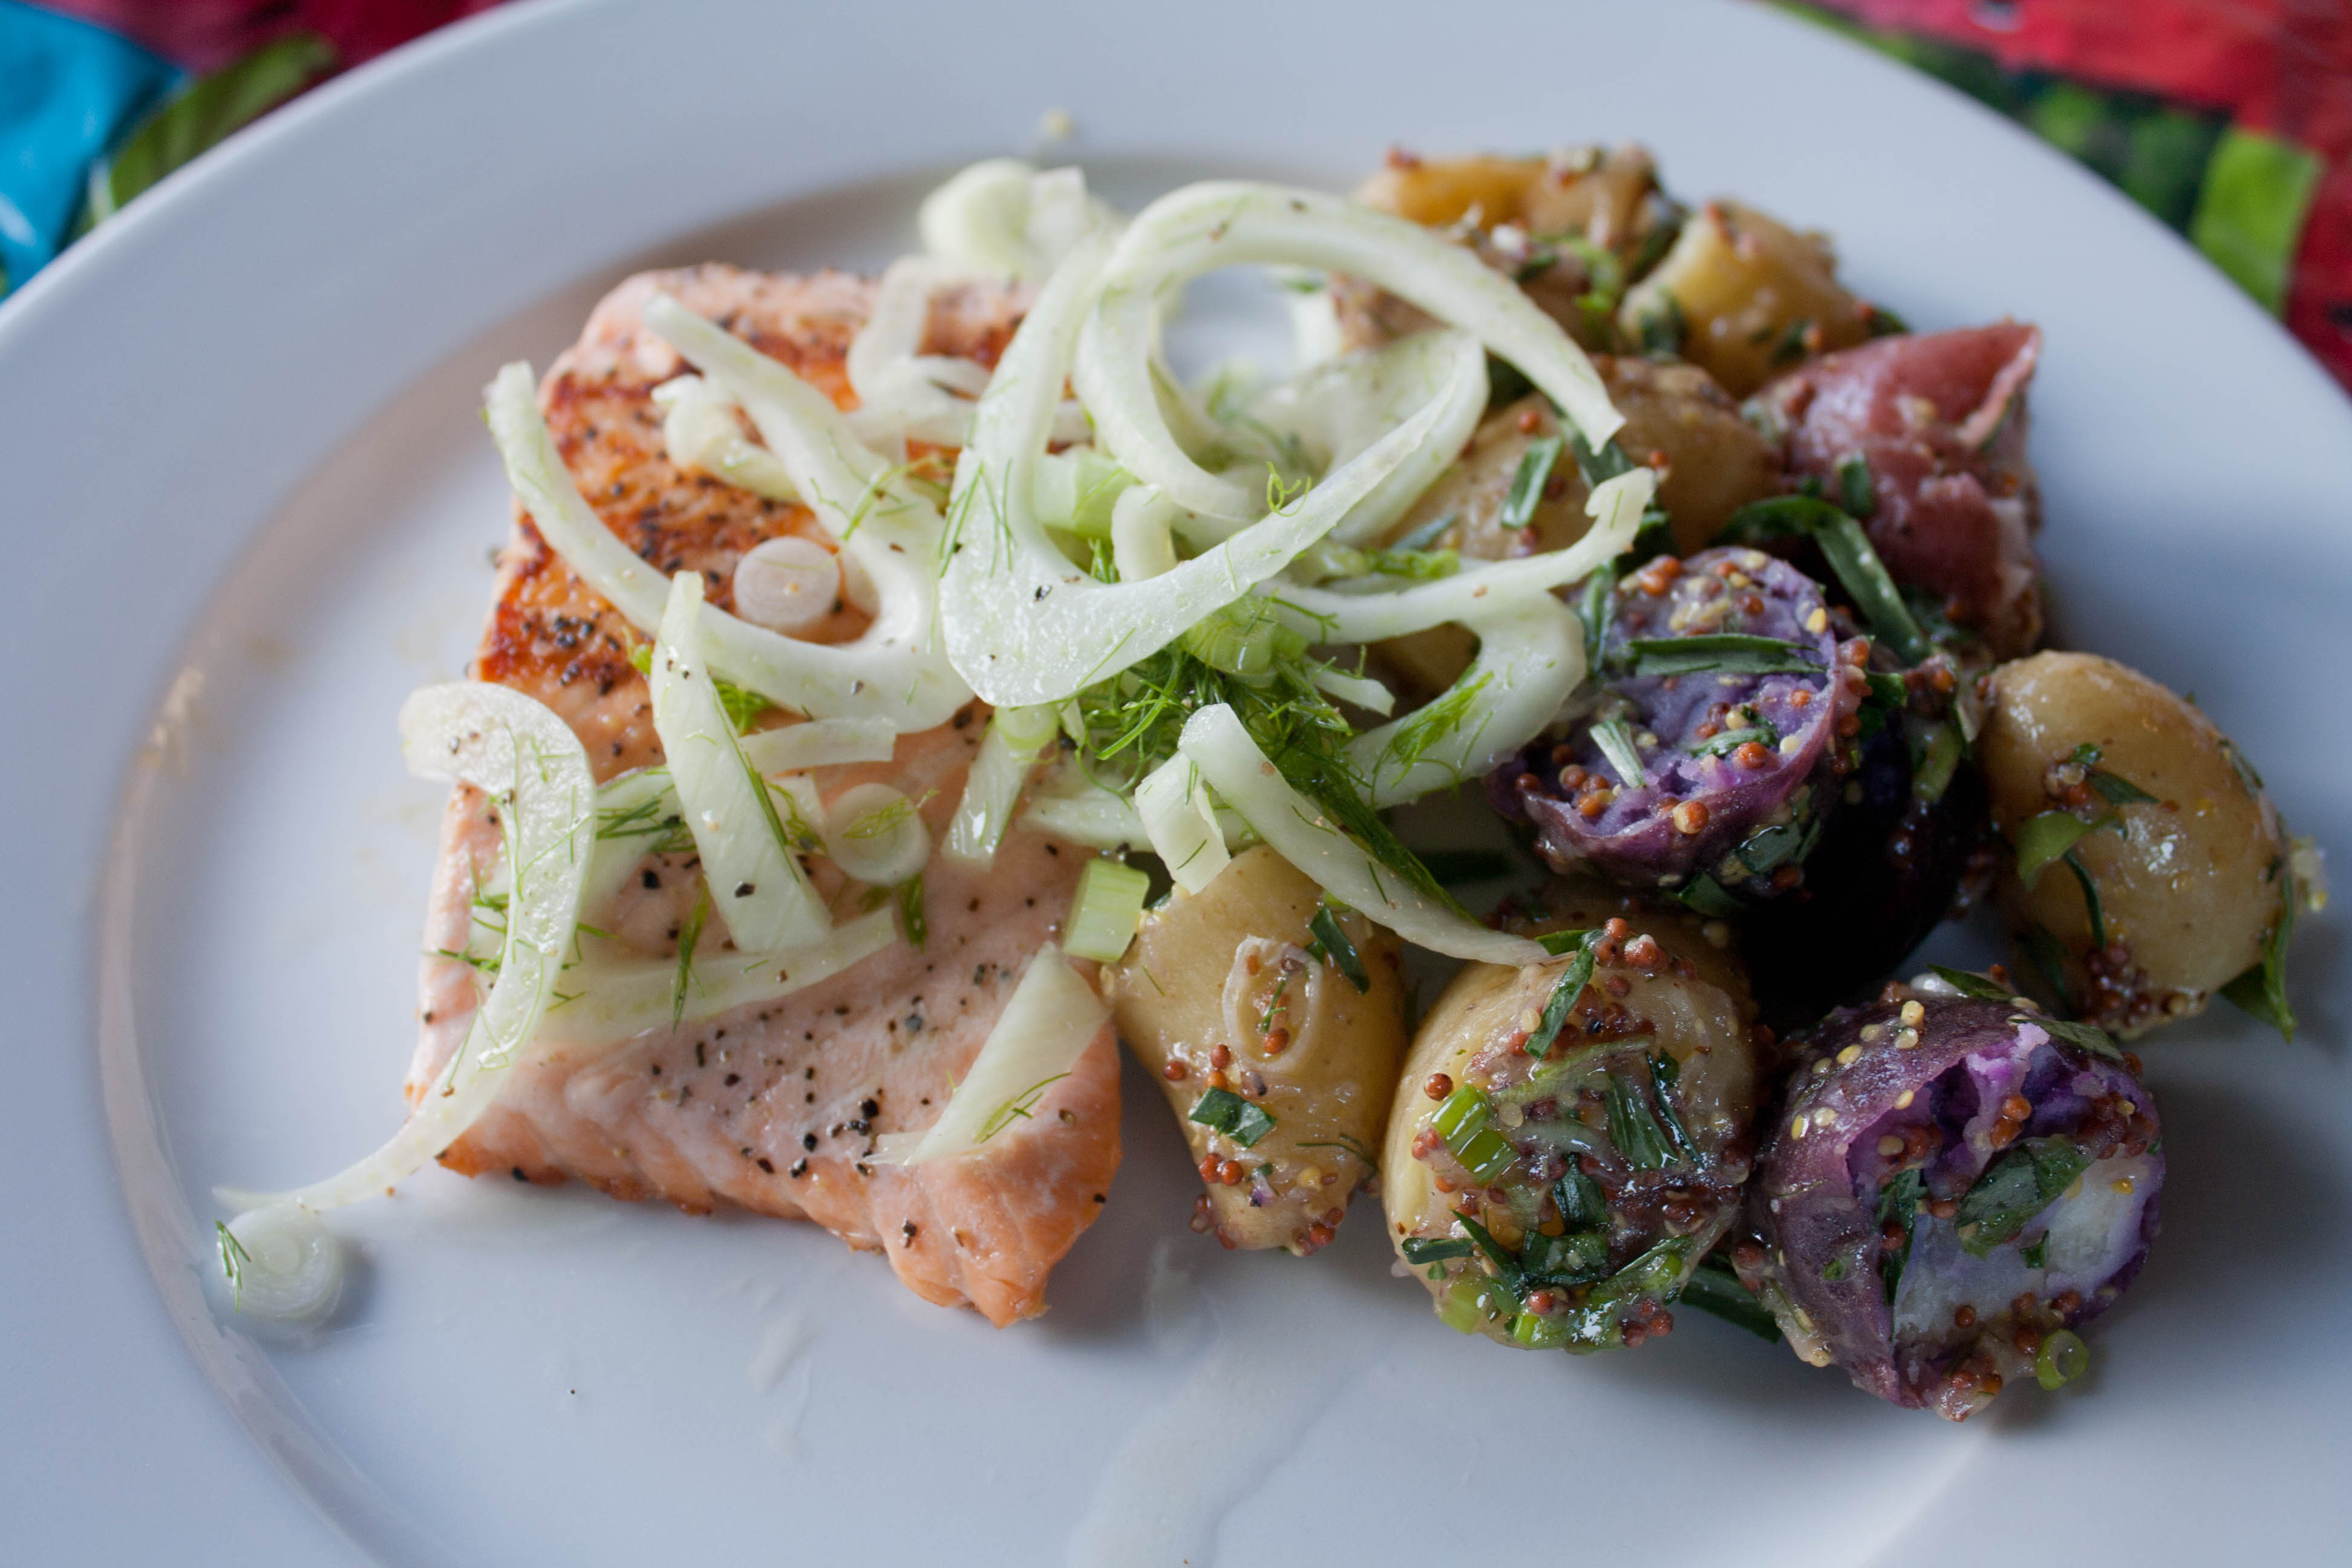 Blue apron and weight loss - This Was Shocking Because Historically I Hate Fennel Maybe It S Fennel Seeds I Dislike Not Sure But It S A Huge Turn Off To Me And I Was Shocked That I